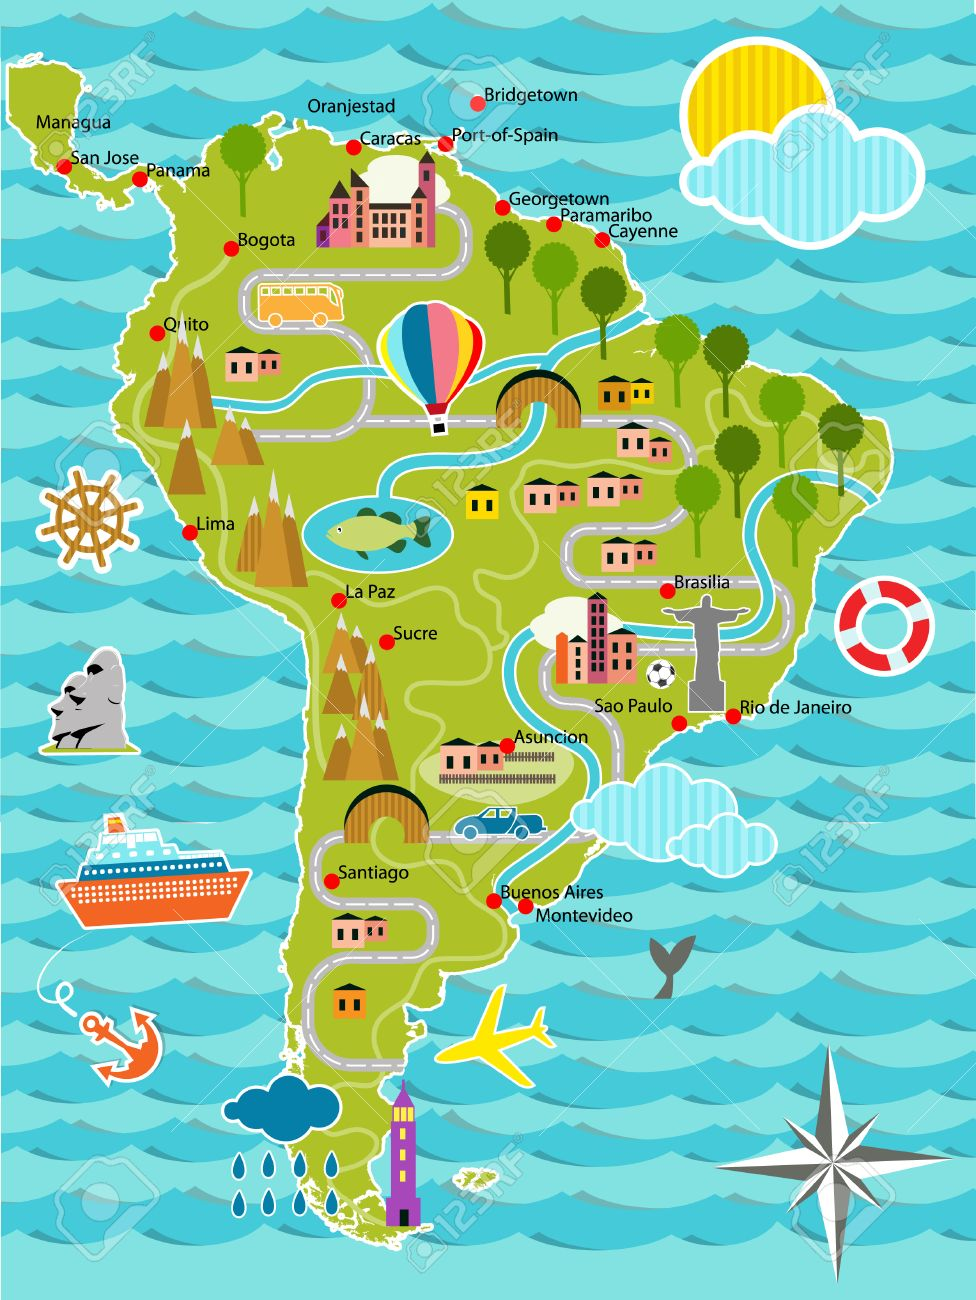 Amazon River Cliparts Stock Vector And Royalty Free Amazon - Map of south america amazon river